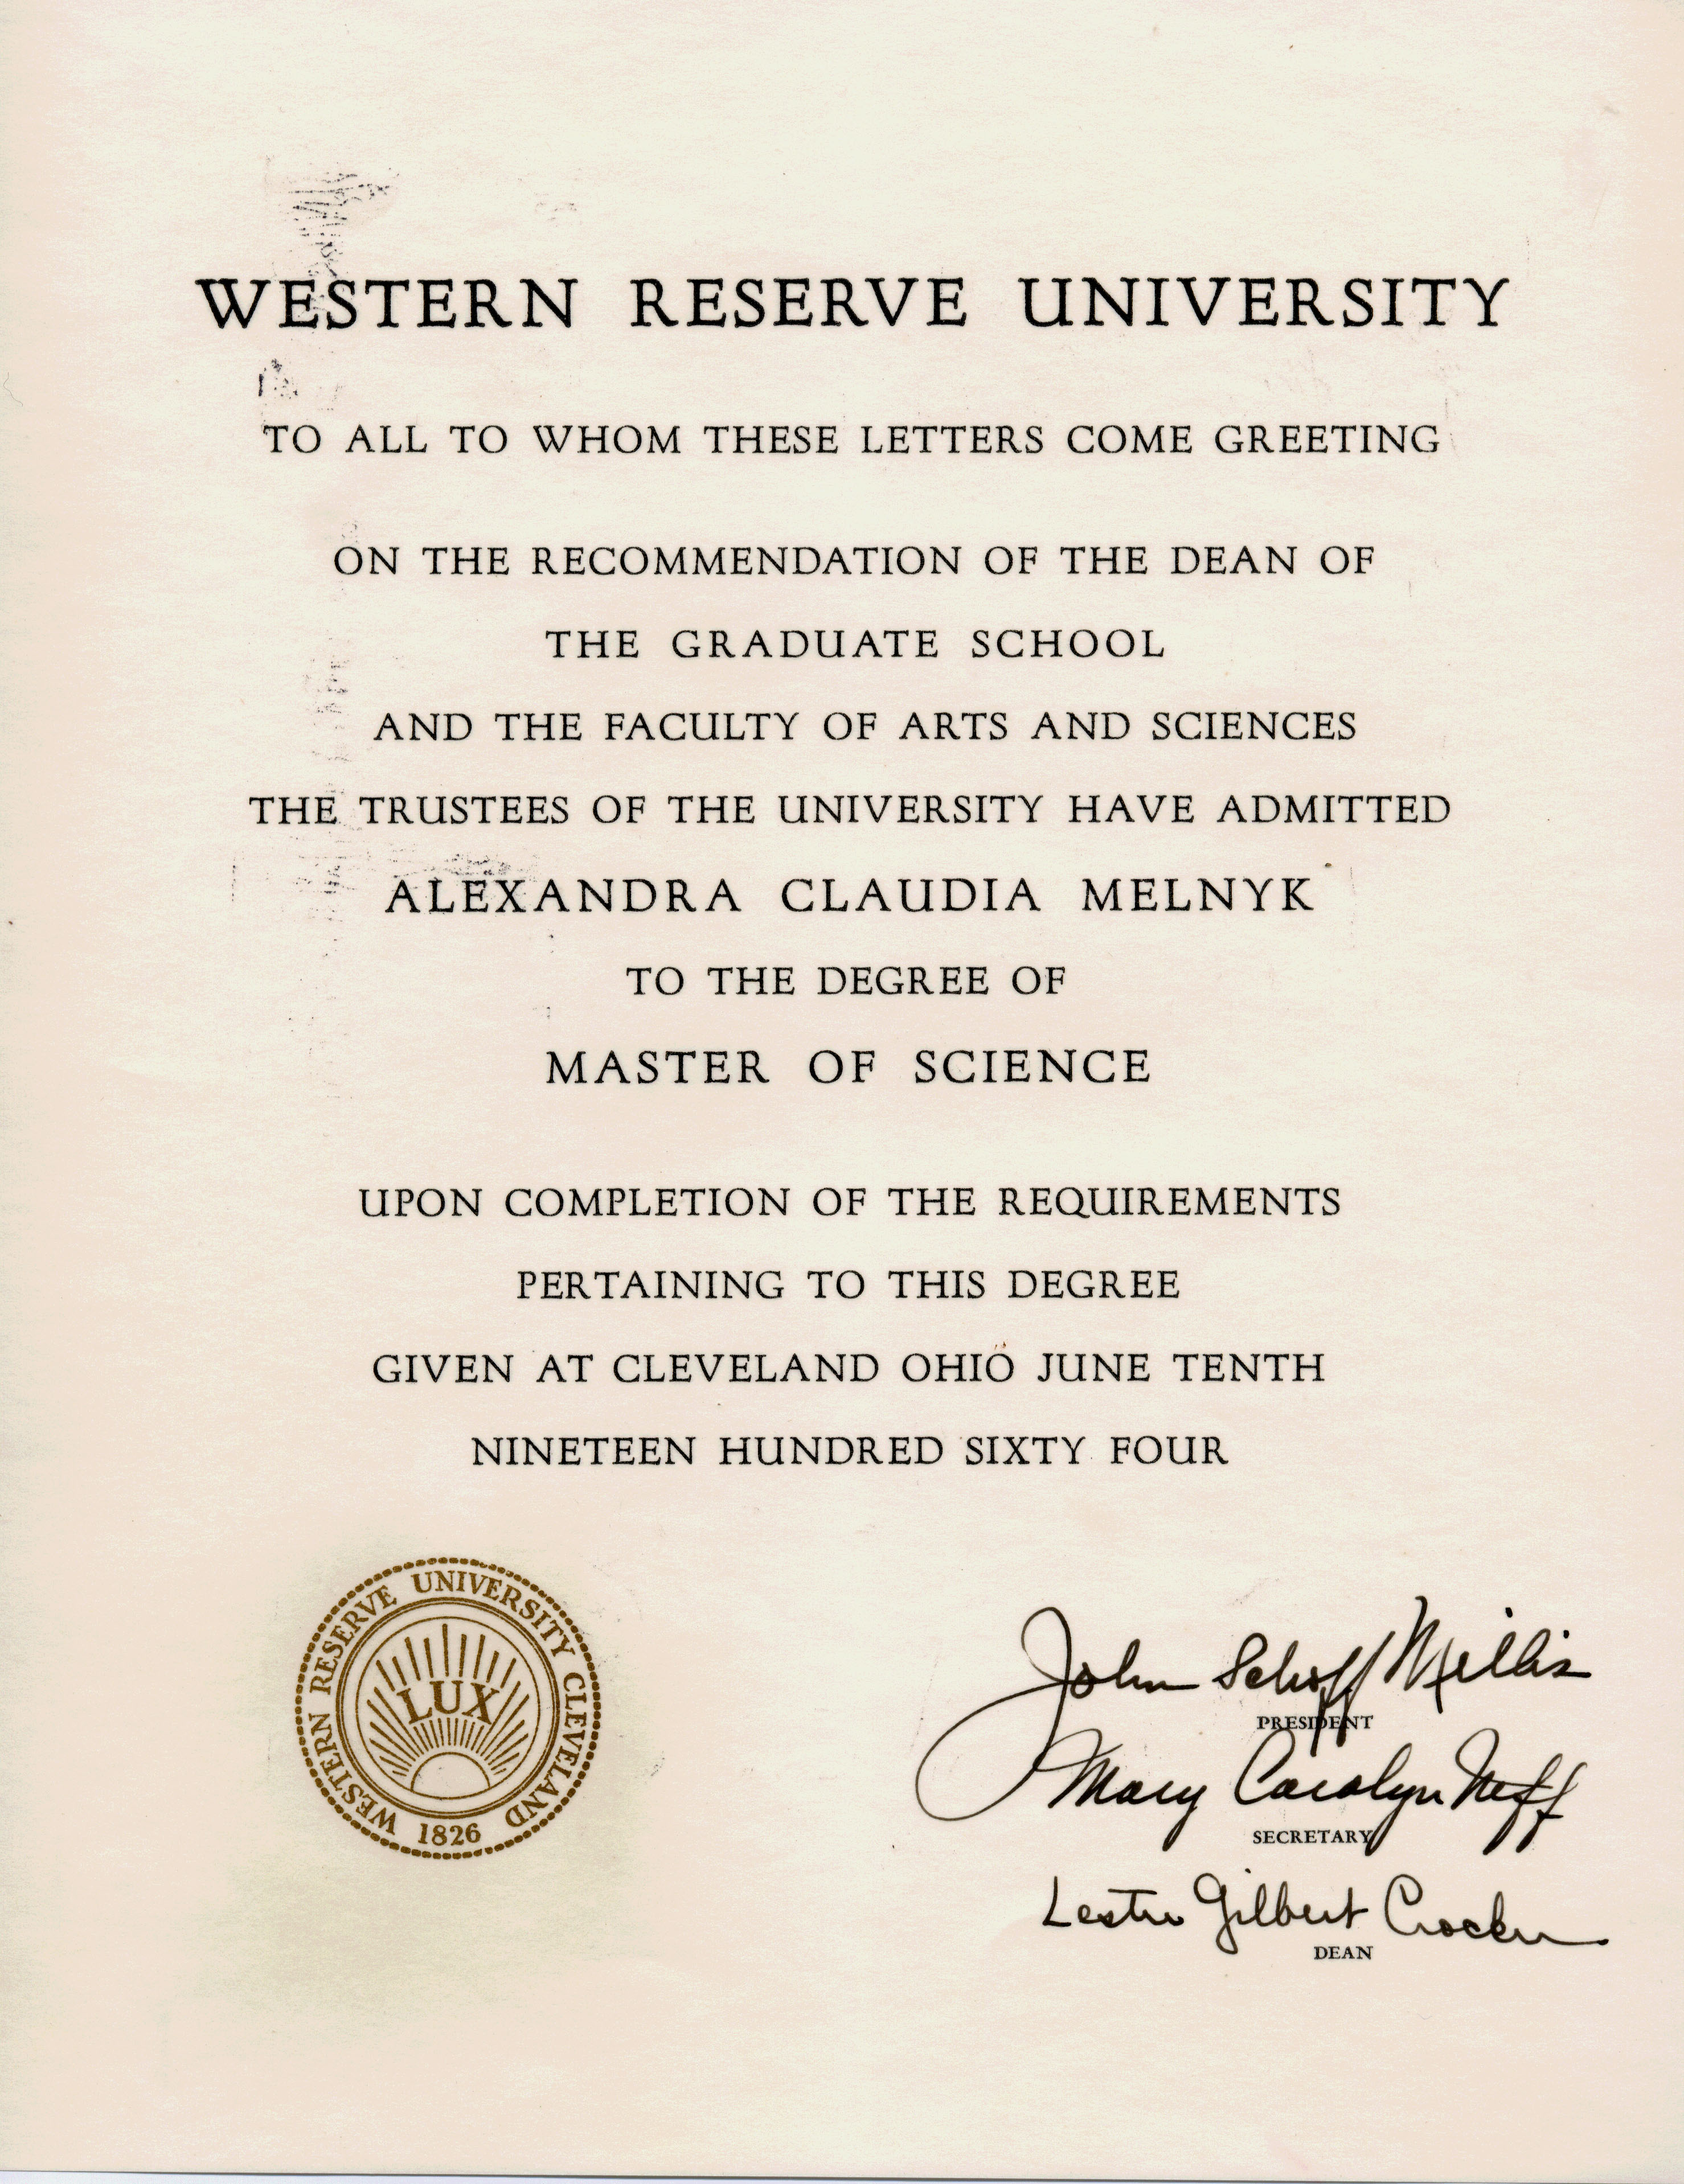 Masters Degree Certificate From Western Reserve University